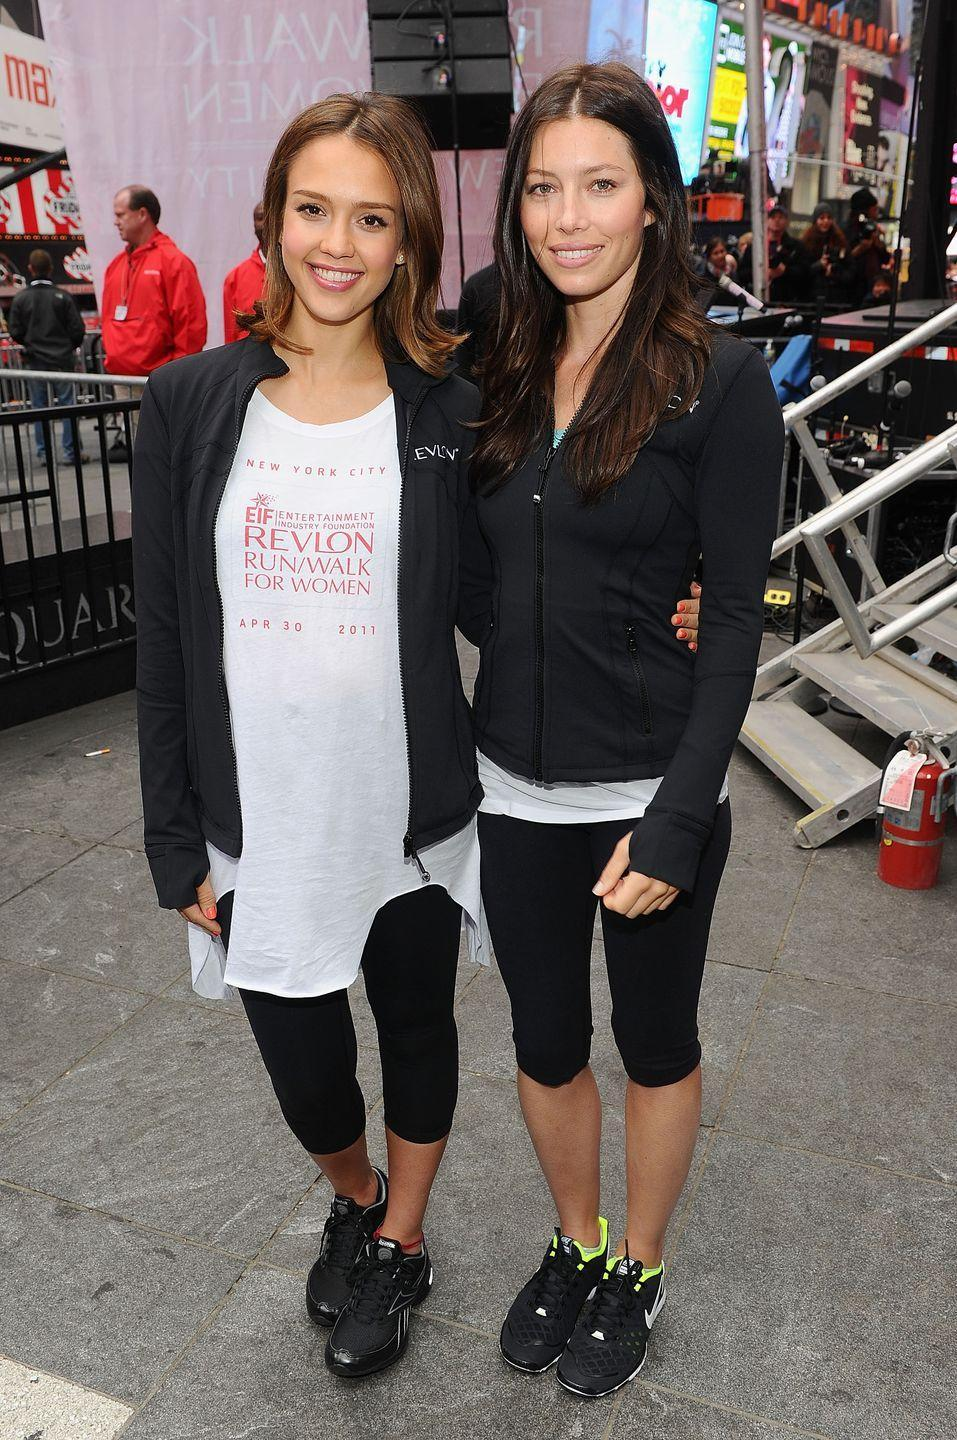 "<p>Jessica's Instagram is filled with photos of herself and her workout friends. 'I really like taking group classes, or I like to work out with friends,' she told <a href=""https://www.byrdie.com/jessica-alba-diet-fitness-tips"" rel=""nofollow noopener"" target=""_blank"" data-ylk=""slk:Byrdie"" class=""link rapid-noclick-resp"">Byrdie</a>. 'I'll always work out with a friend because it's more fun.'</p>"